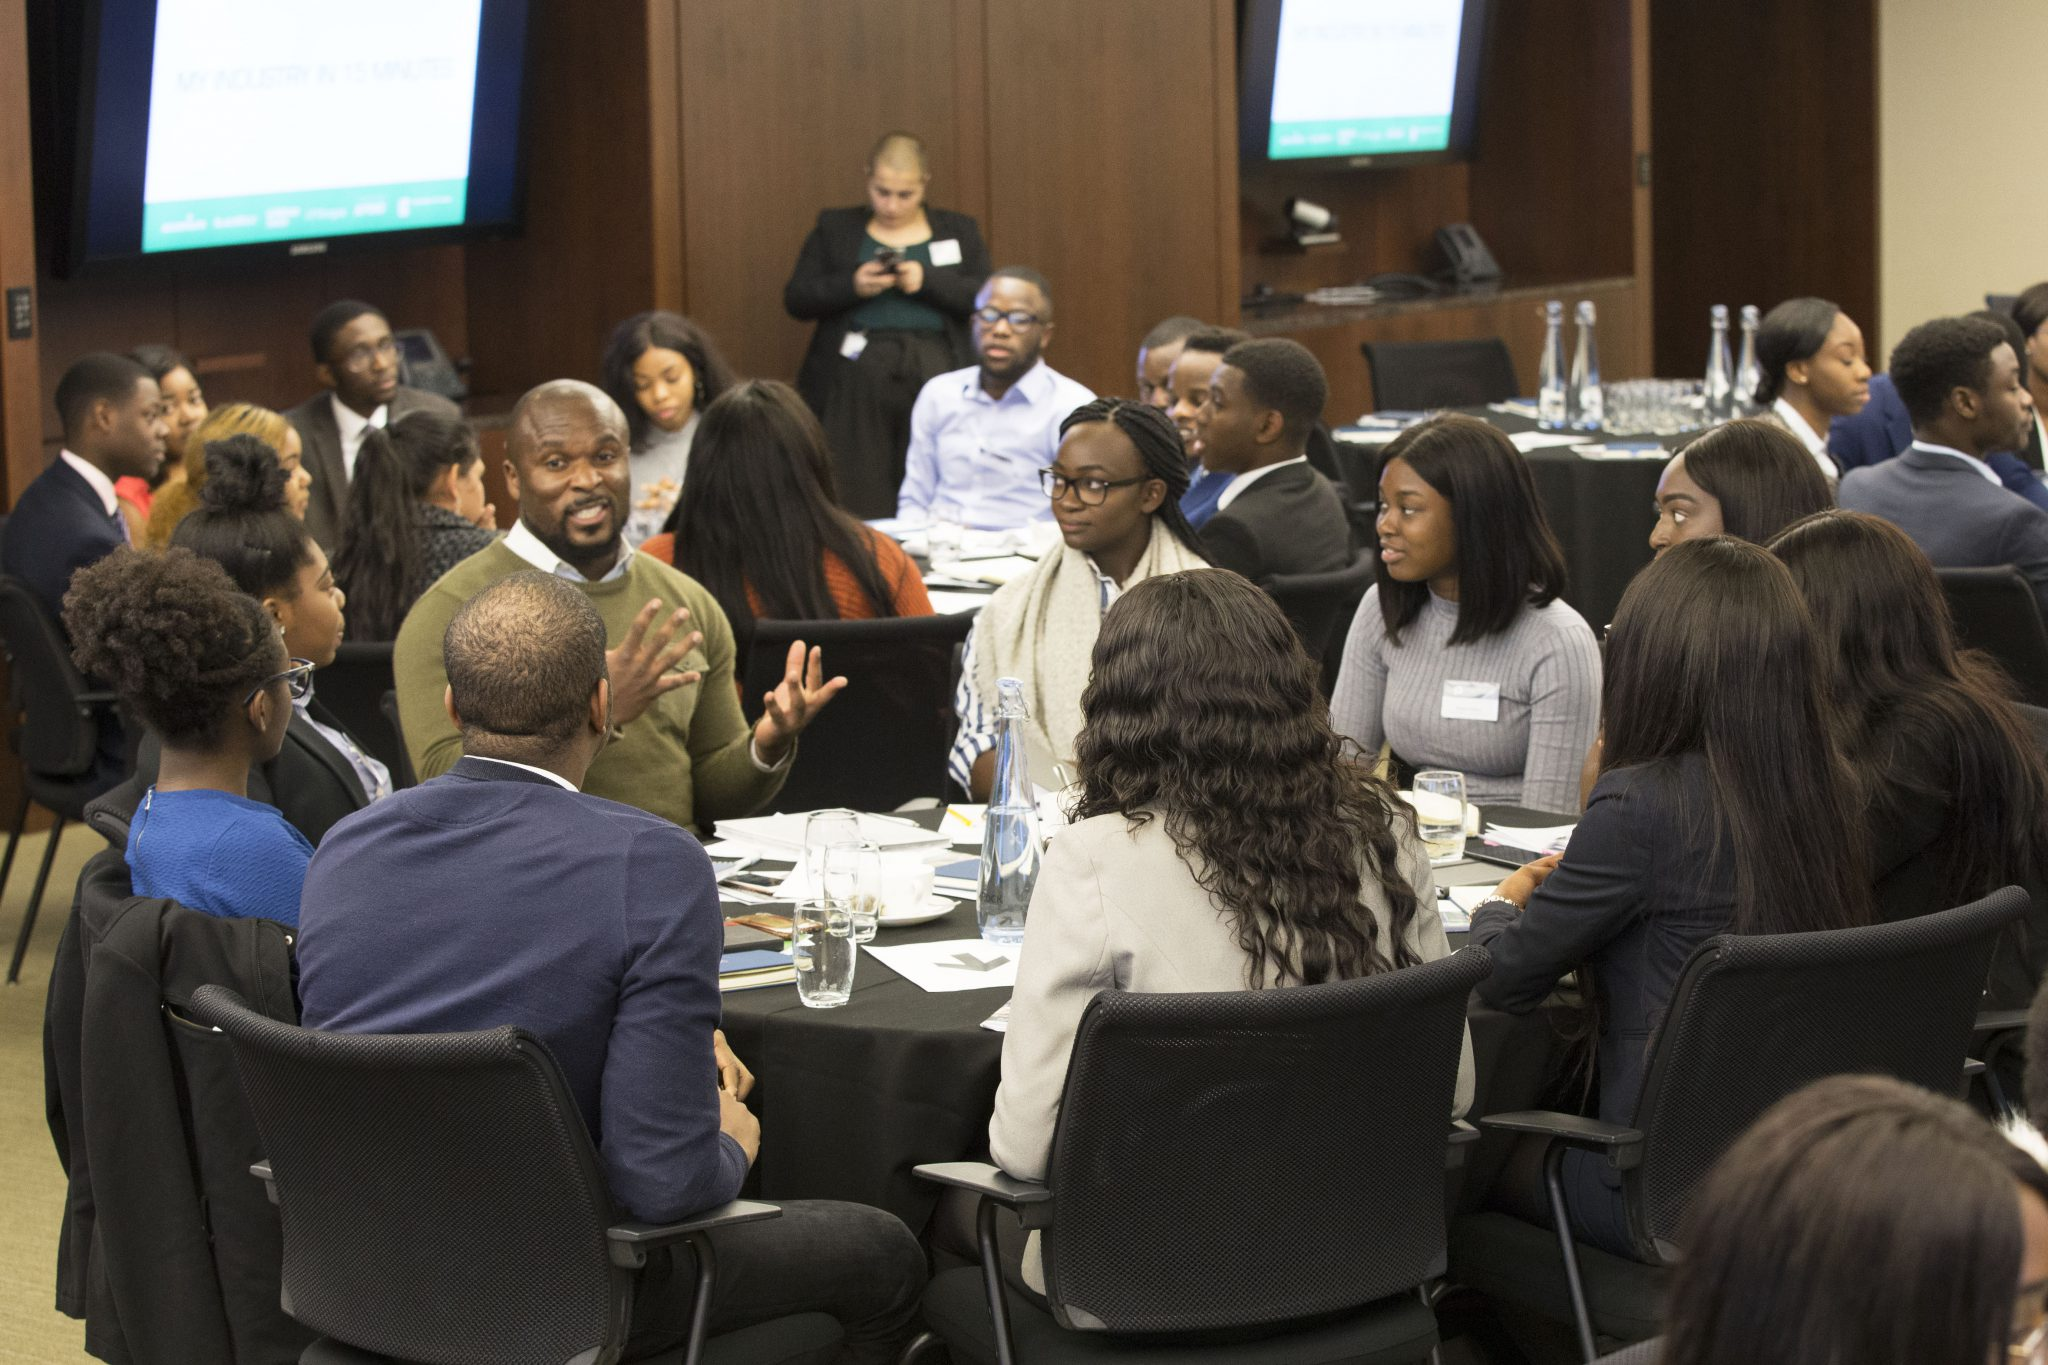 Group of diverse students sitting and conversing during an Uncovering Prospects event